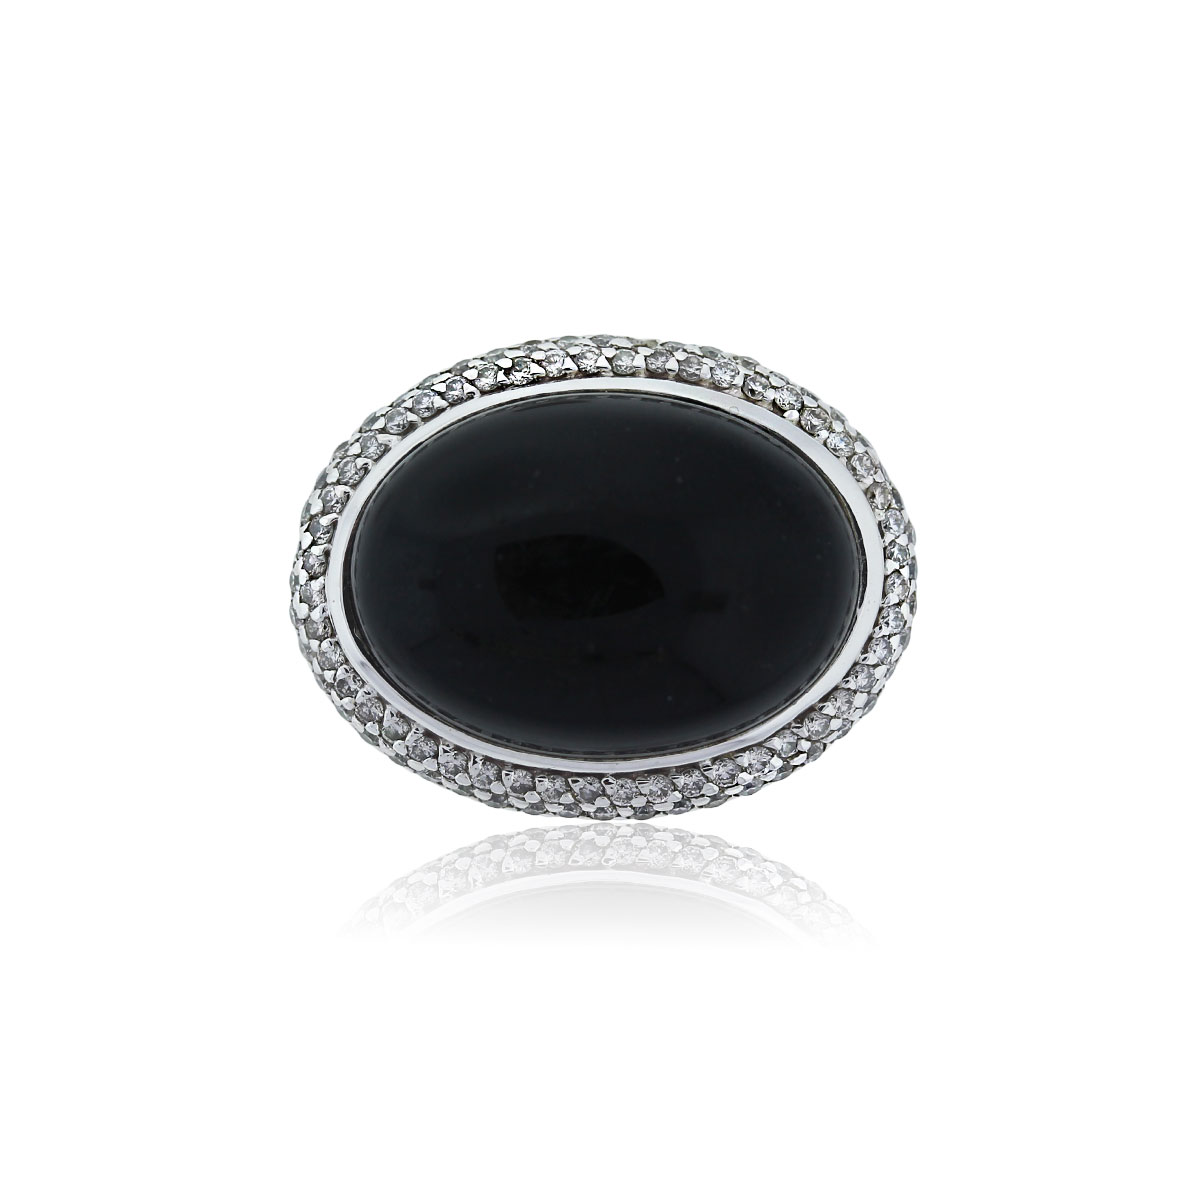 You are viewing this David Yurman Sterling Silver Onyx & Micro Pave Diamond Ring!